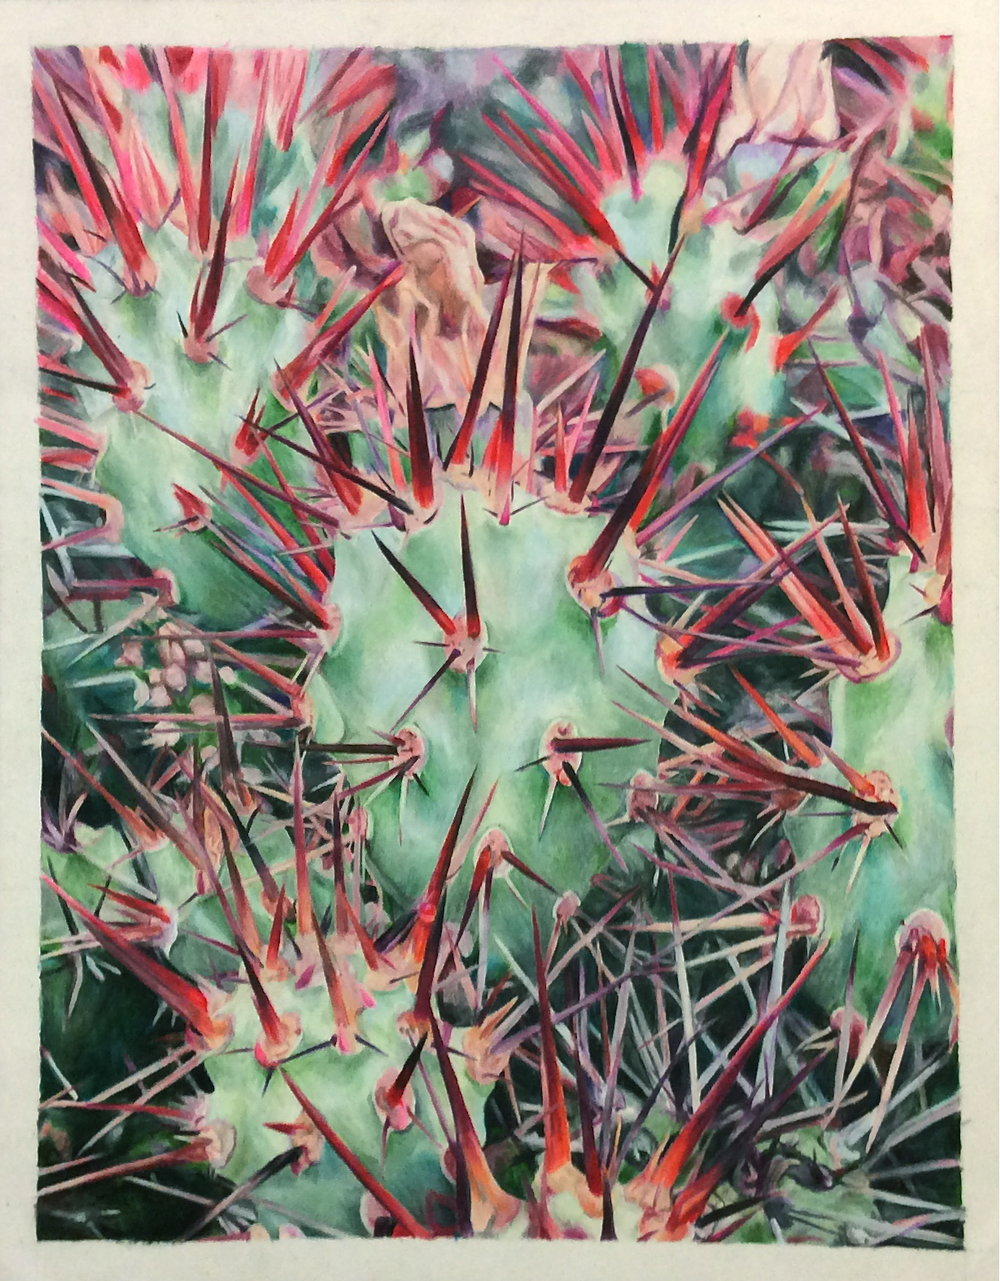 unidentified cactus - 13.75 X 10.75colored pencil on bristol paperprints available on request